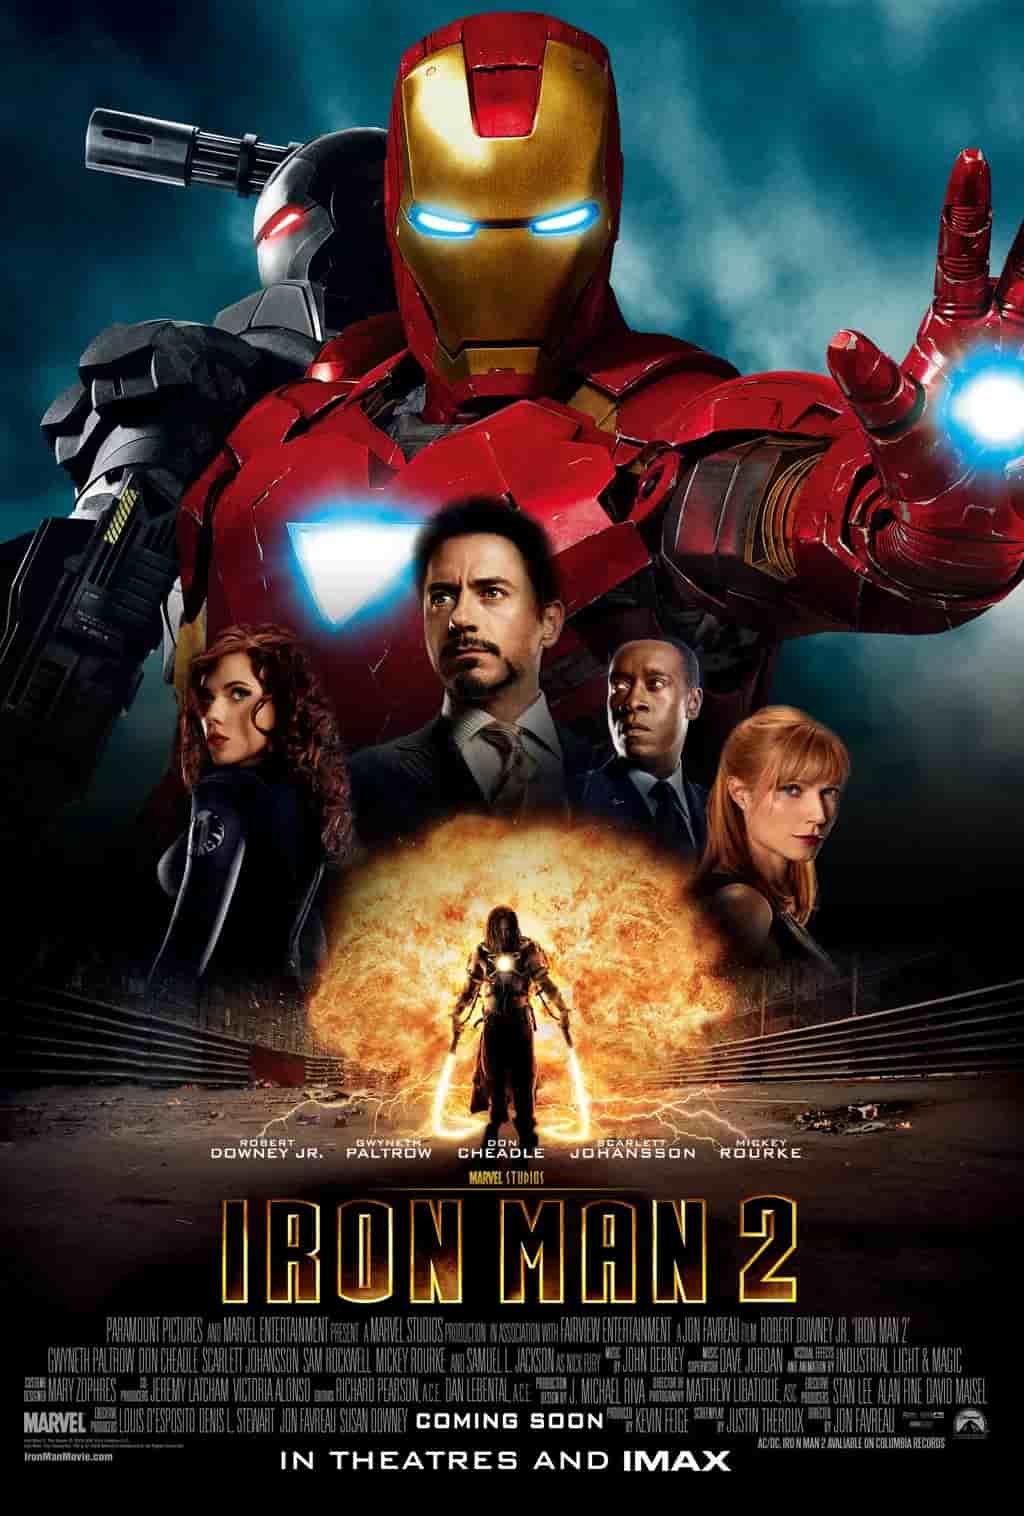 Iron Man 2 (2010) 2160P BluRay REMUX HEVC